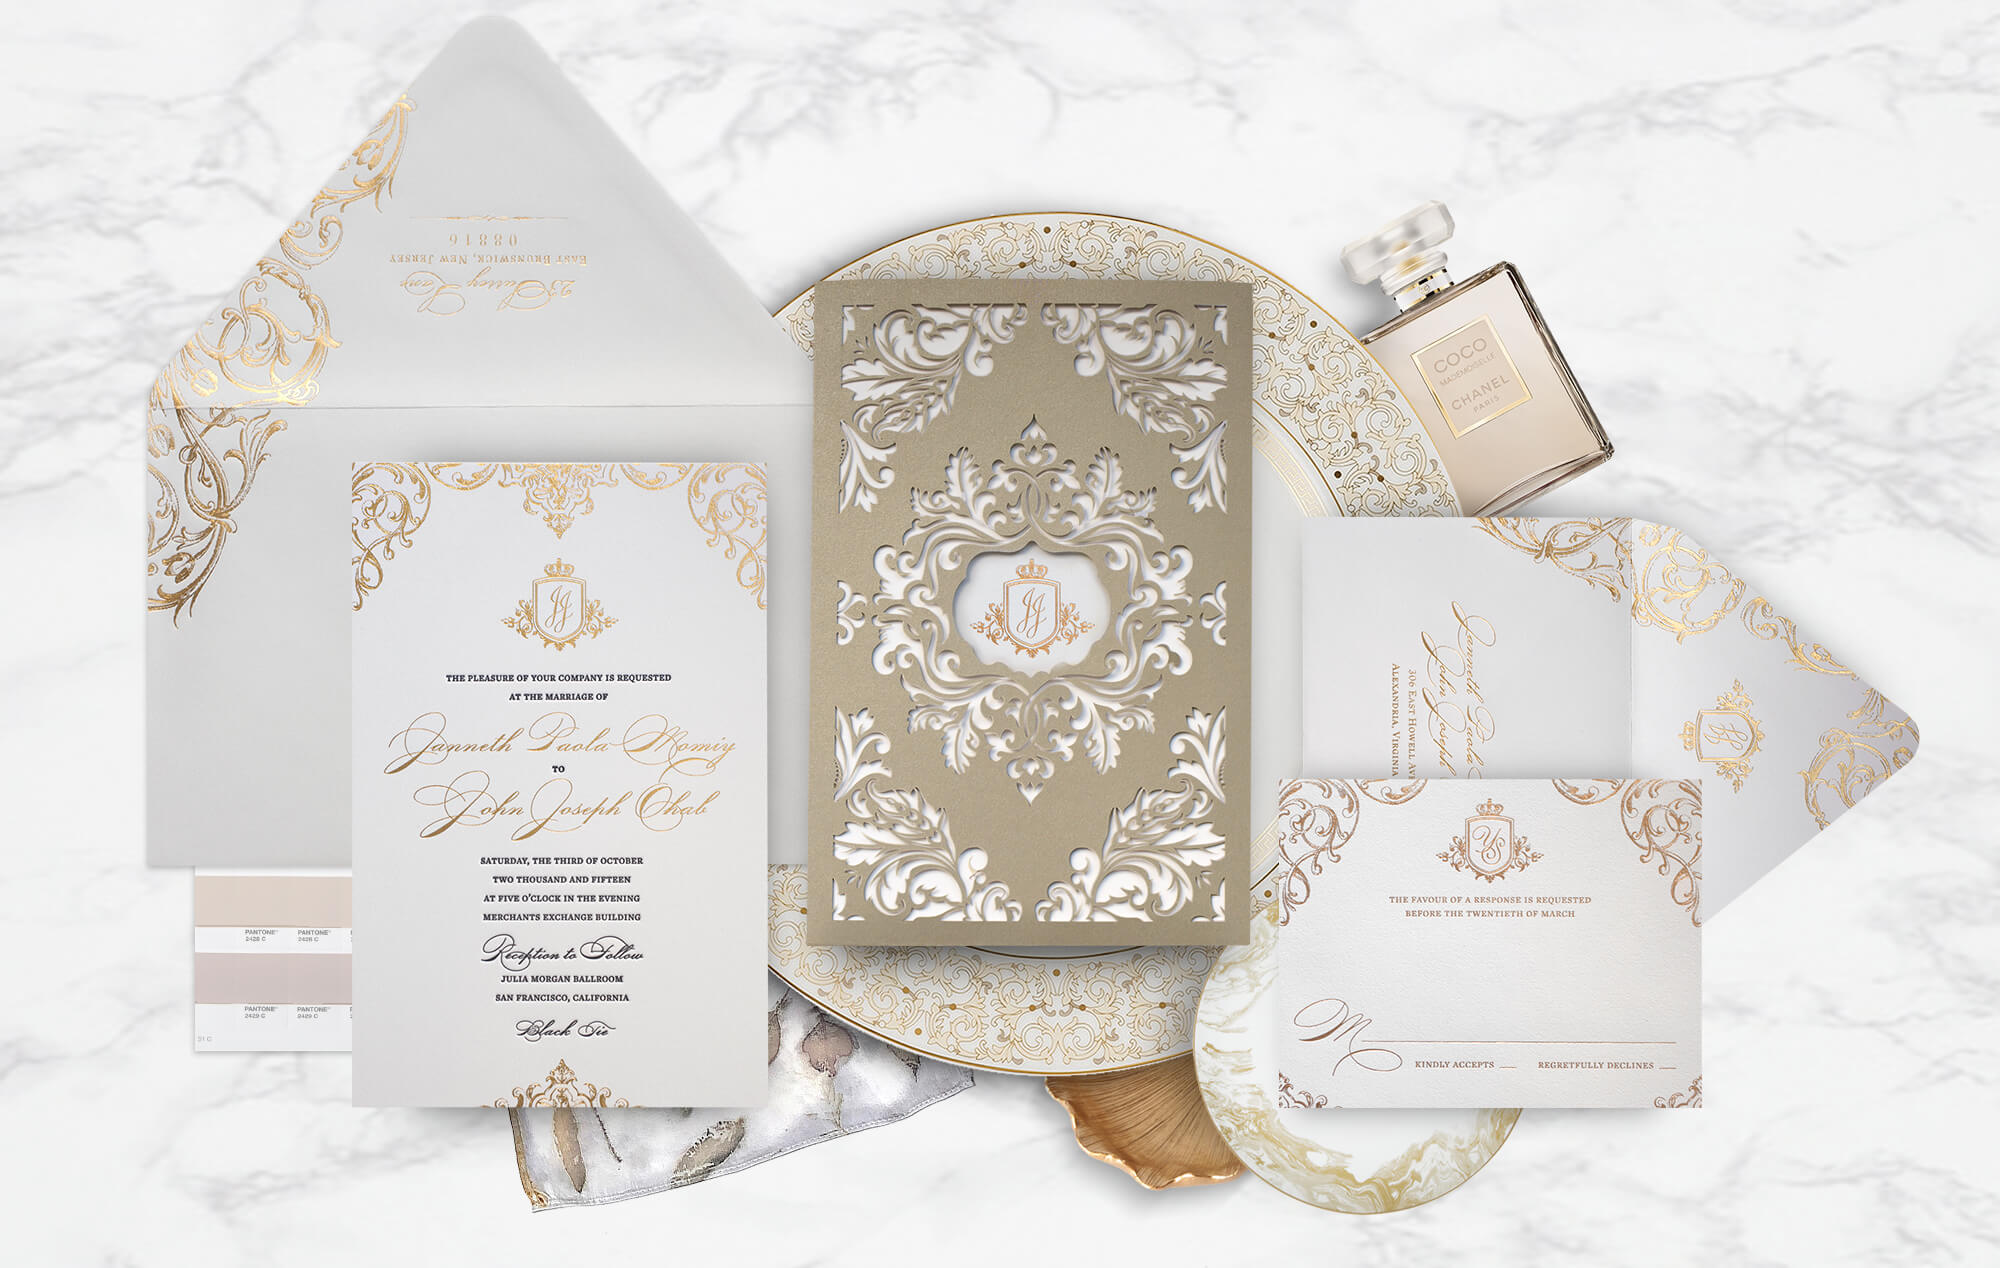 Opulent royal wedding invitation